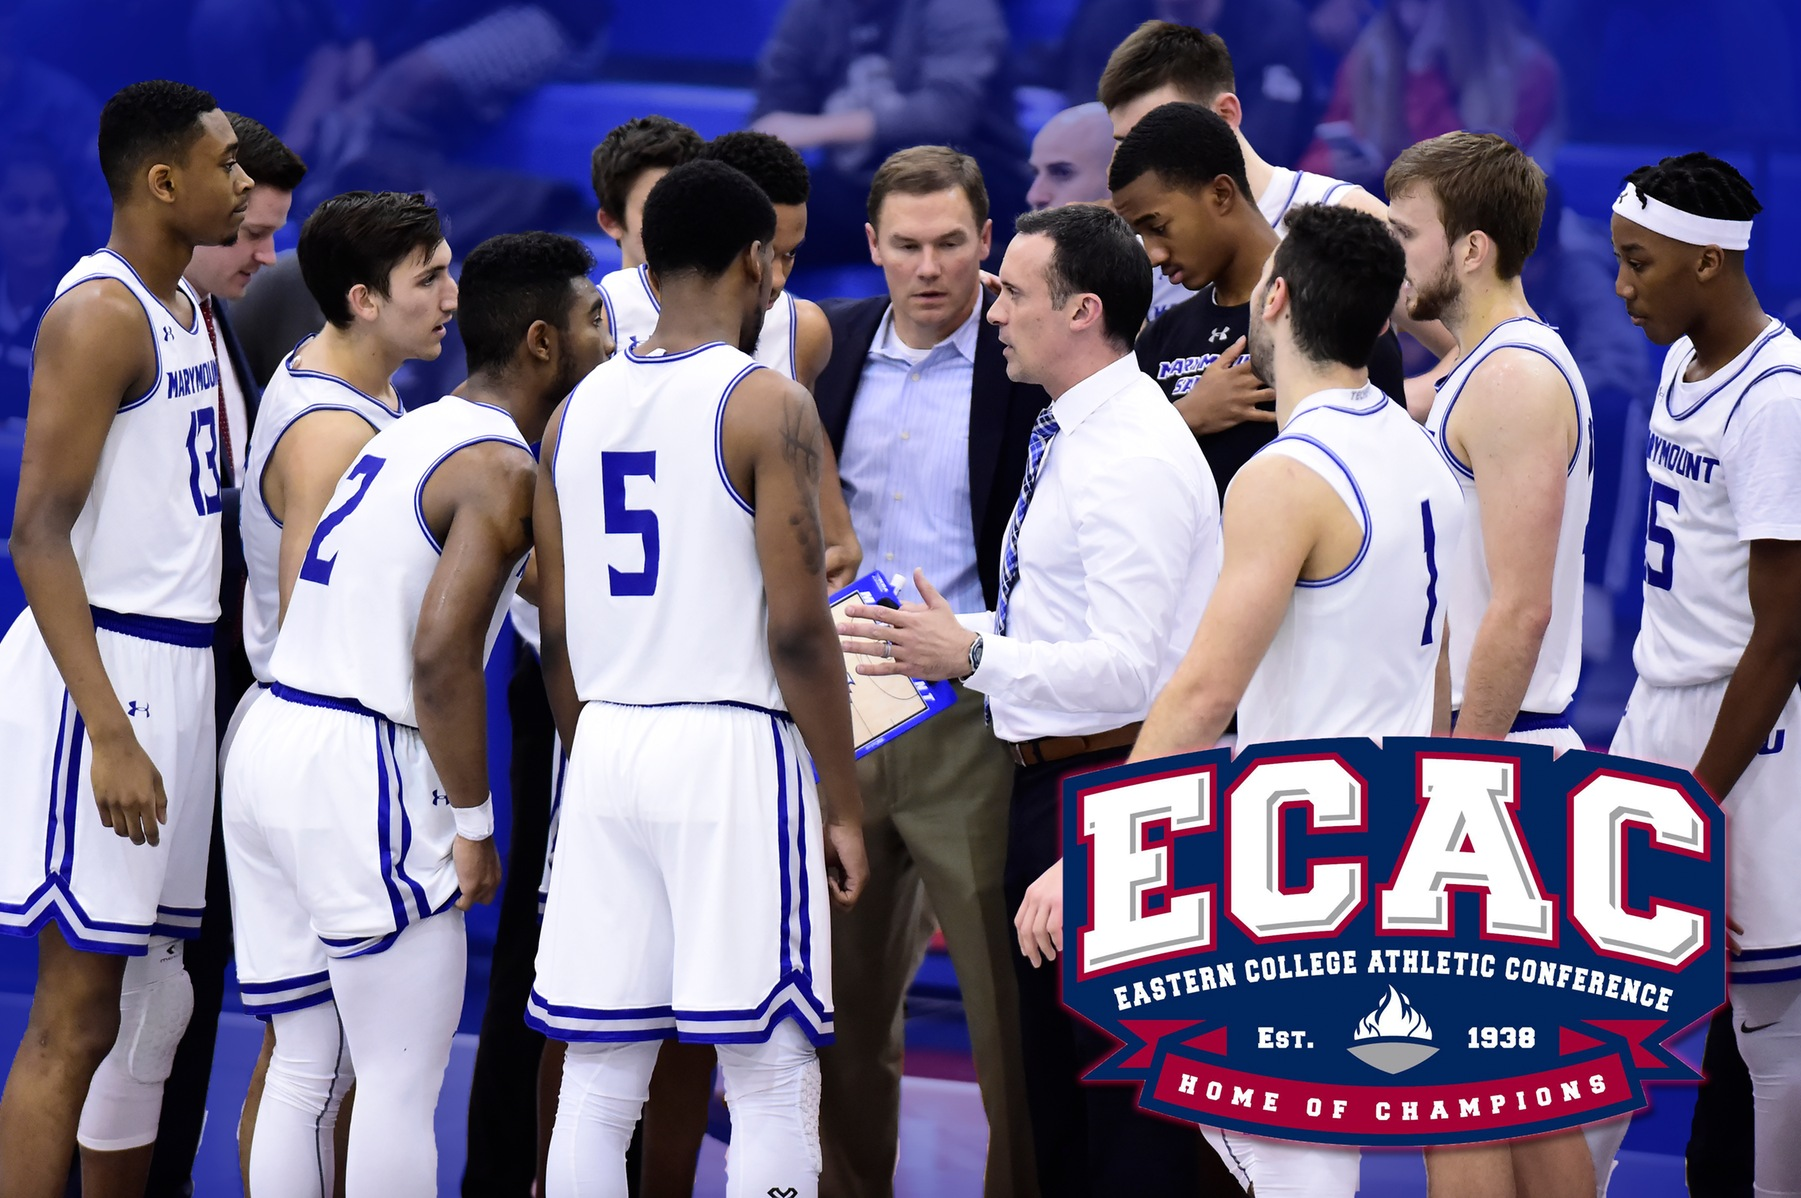 Saints set to take on Cougars in ECAC first round